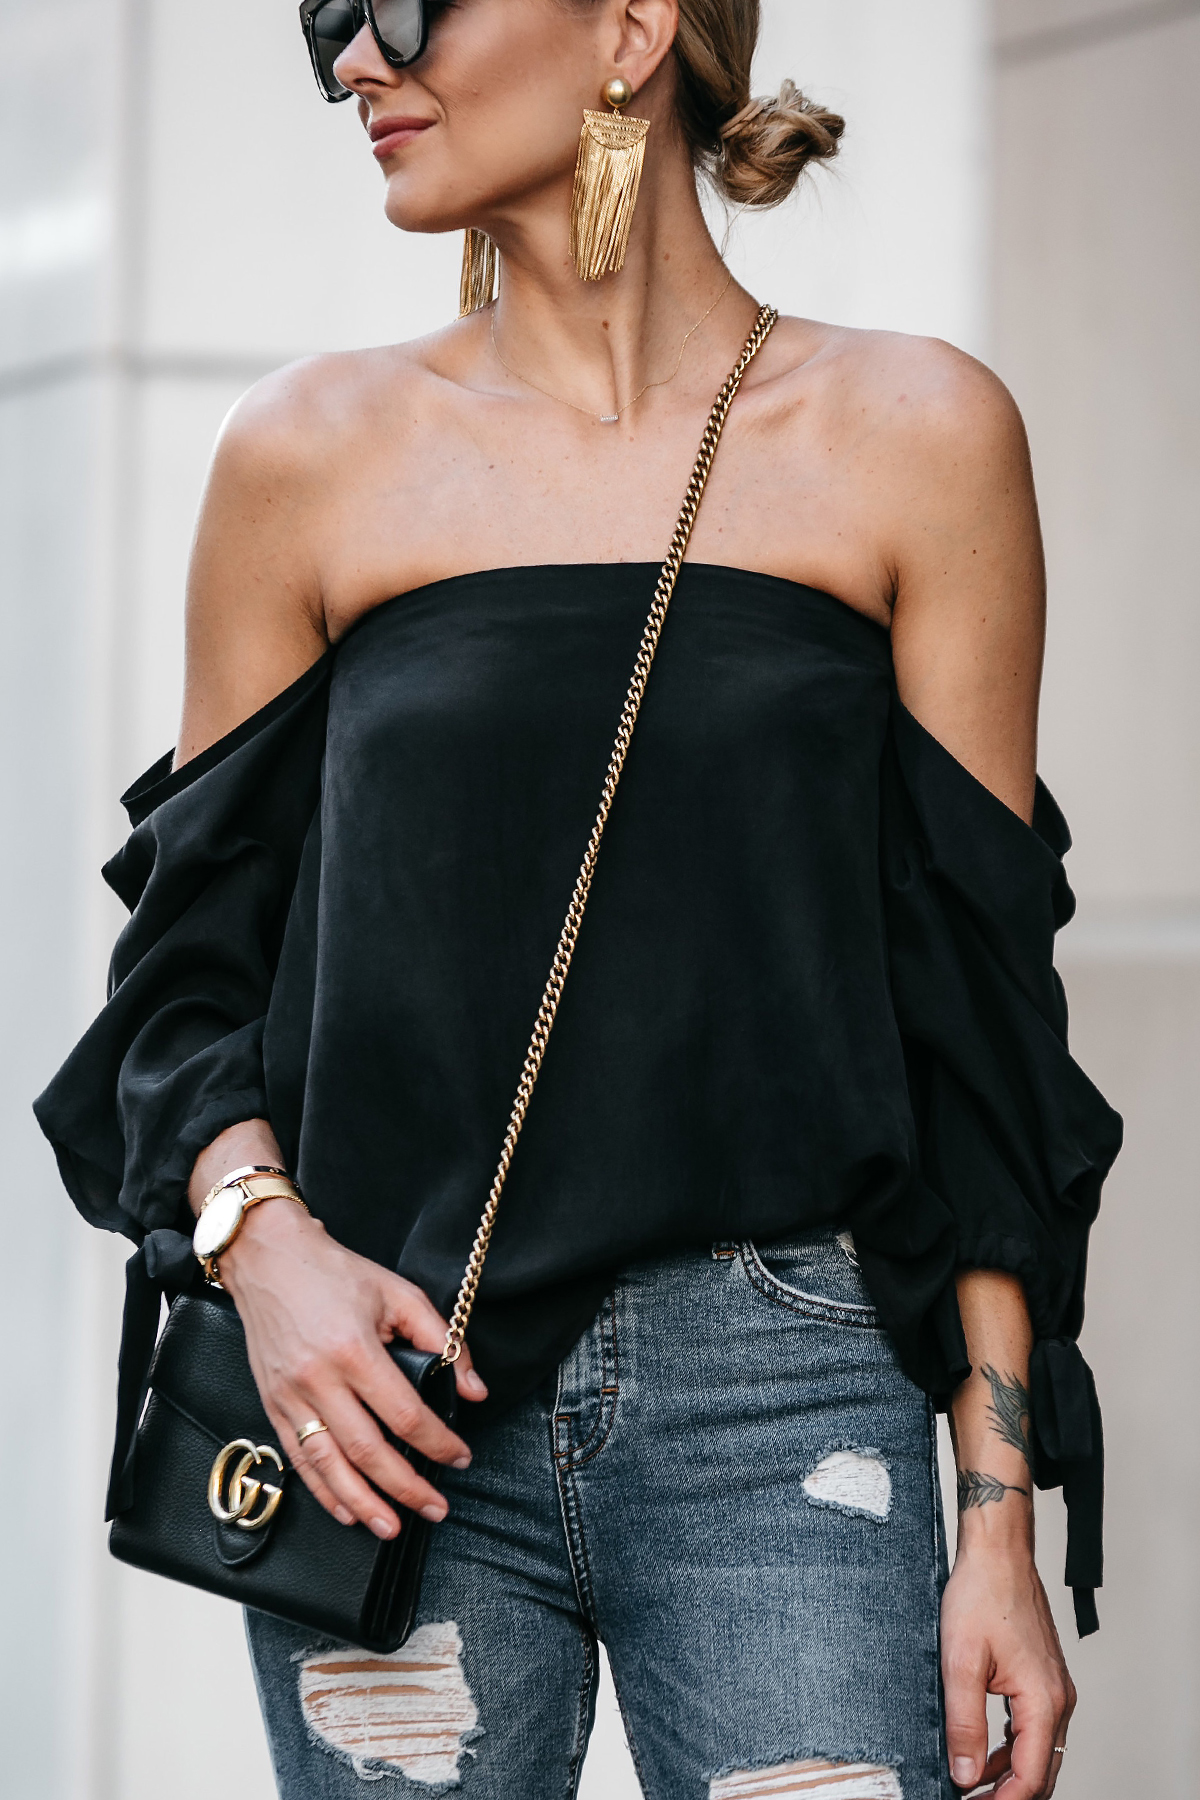 Blonde Woman Wearing Club Monaco Black Off-the-Shoulder Top Large Gold Tassel Earrings Gucci Marmont Handbag